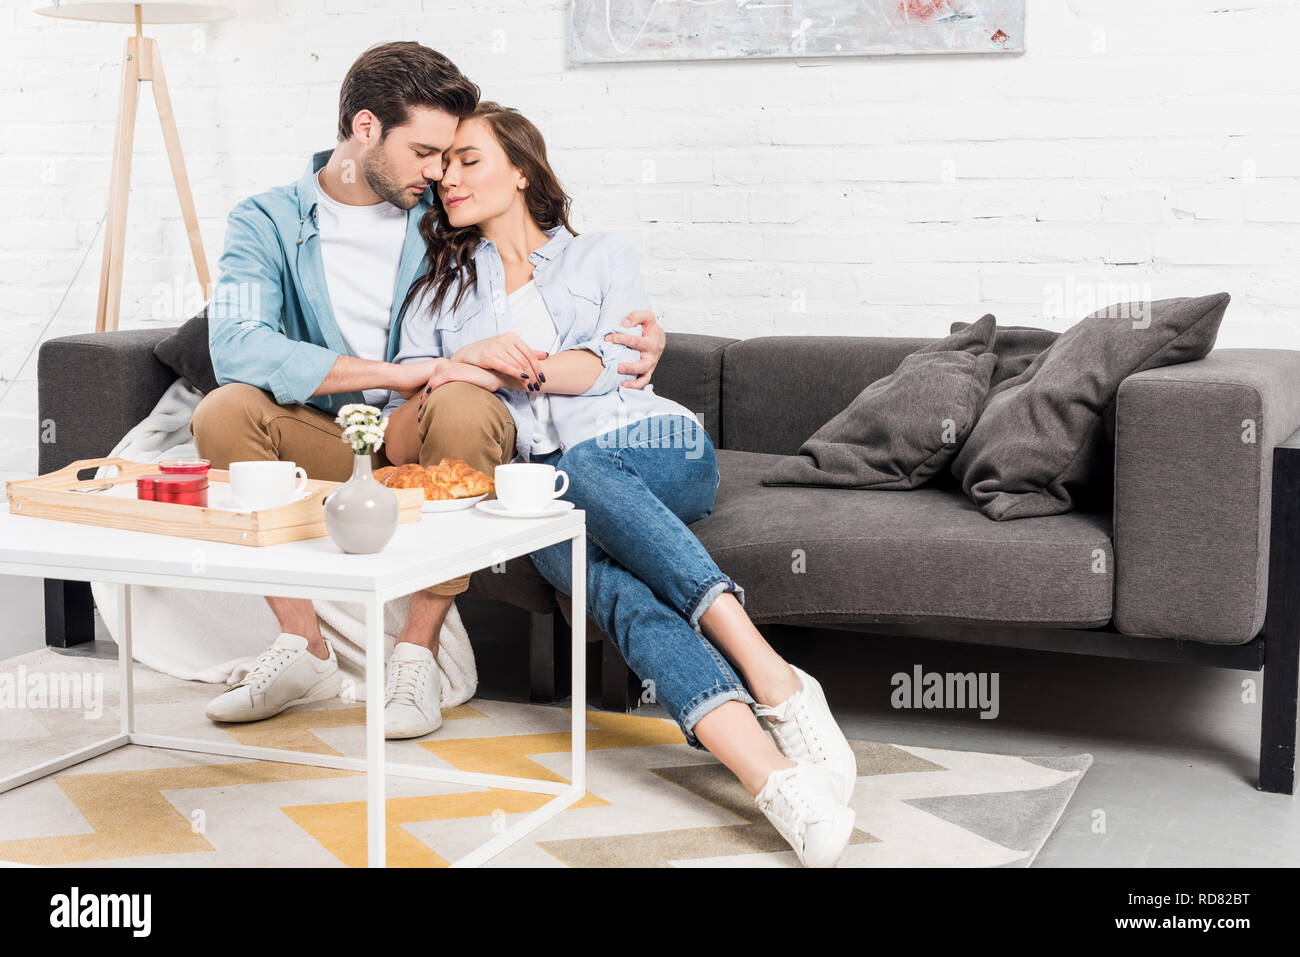 couple sitting on couch and tenderly embracing while having breakfast in living room - Stock Image